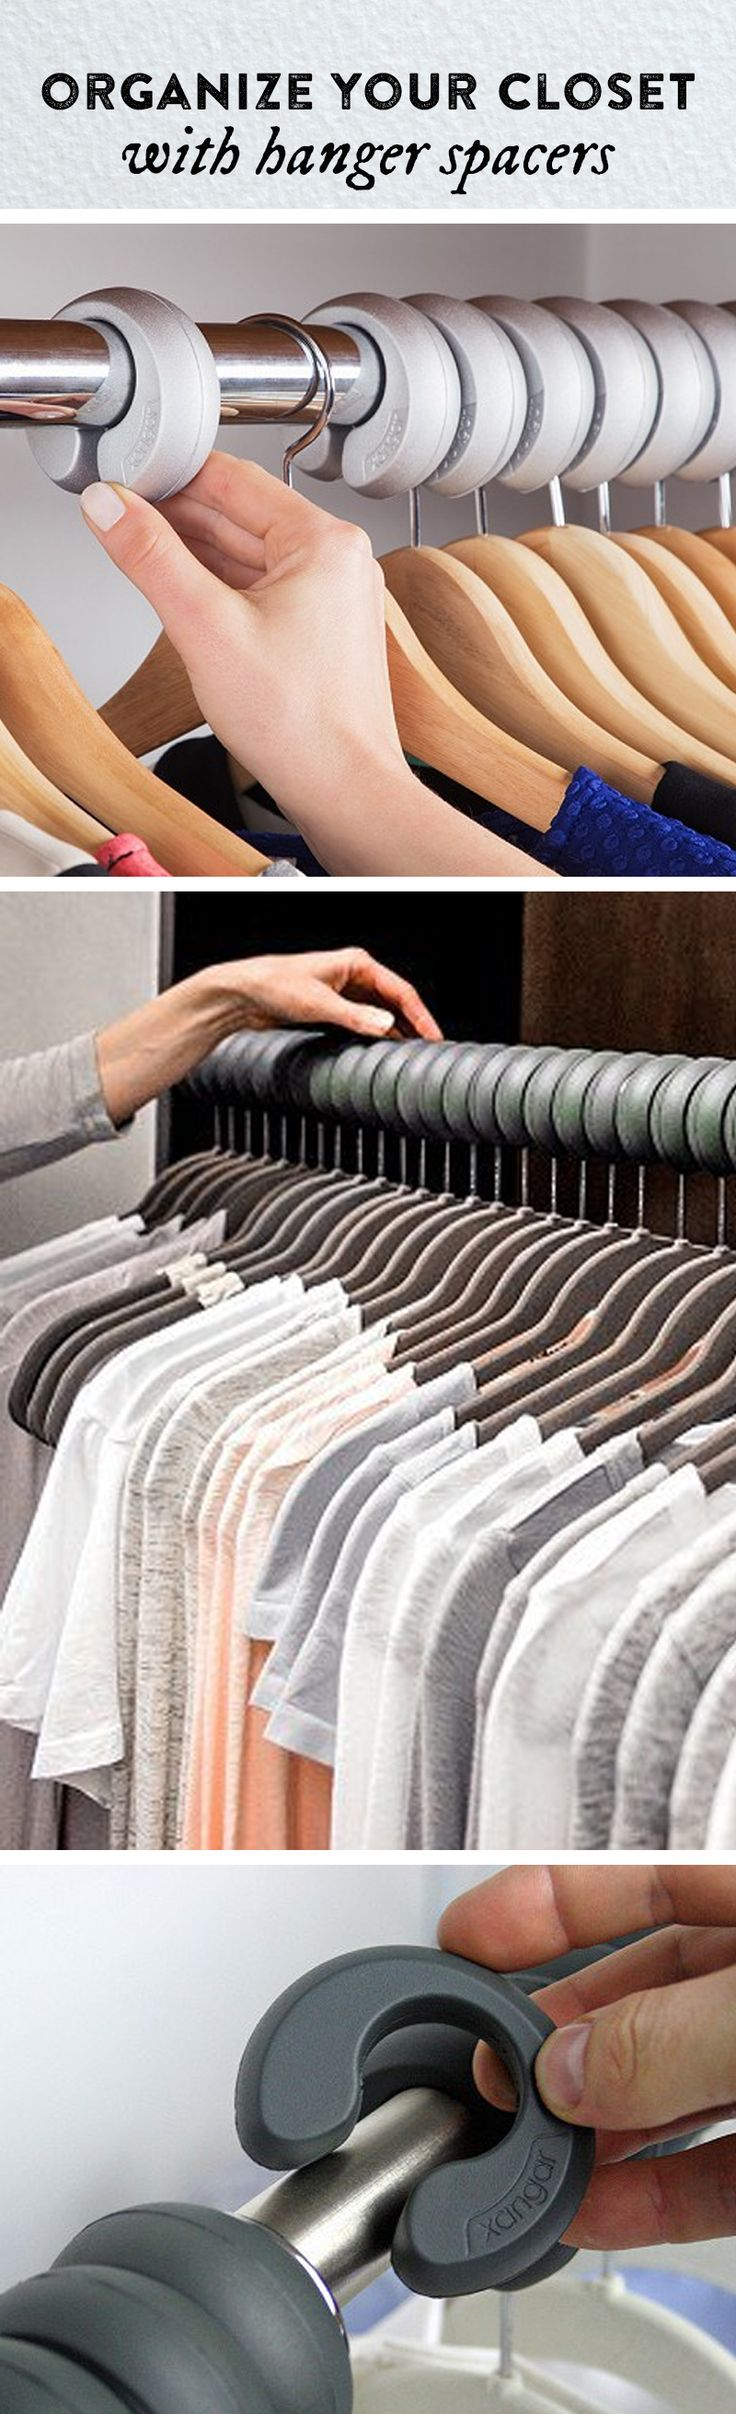 See how freed up your closet can be. These hanger spacers fit over your clothing rod, keeping clothing evenly spaced, unwrinkled, and organized.